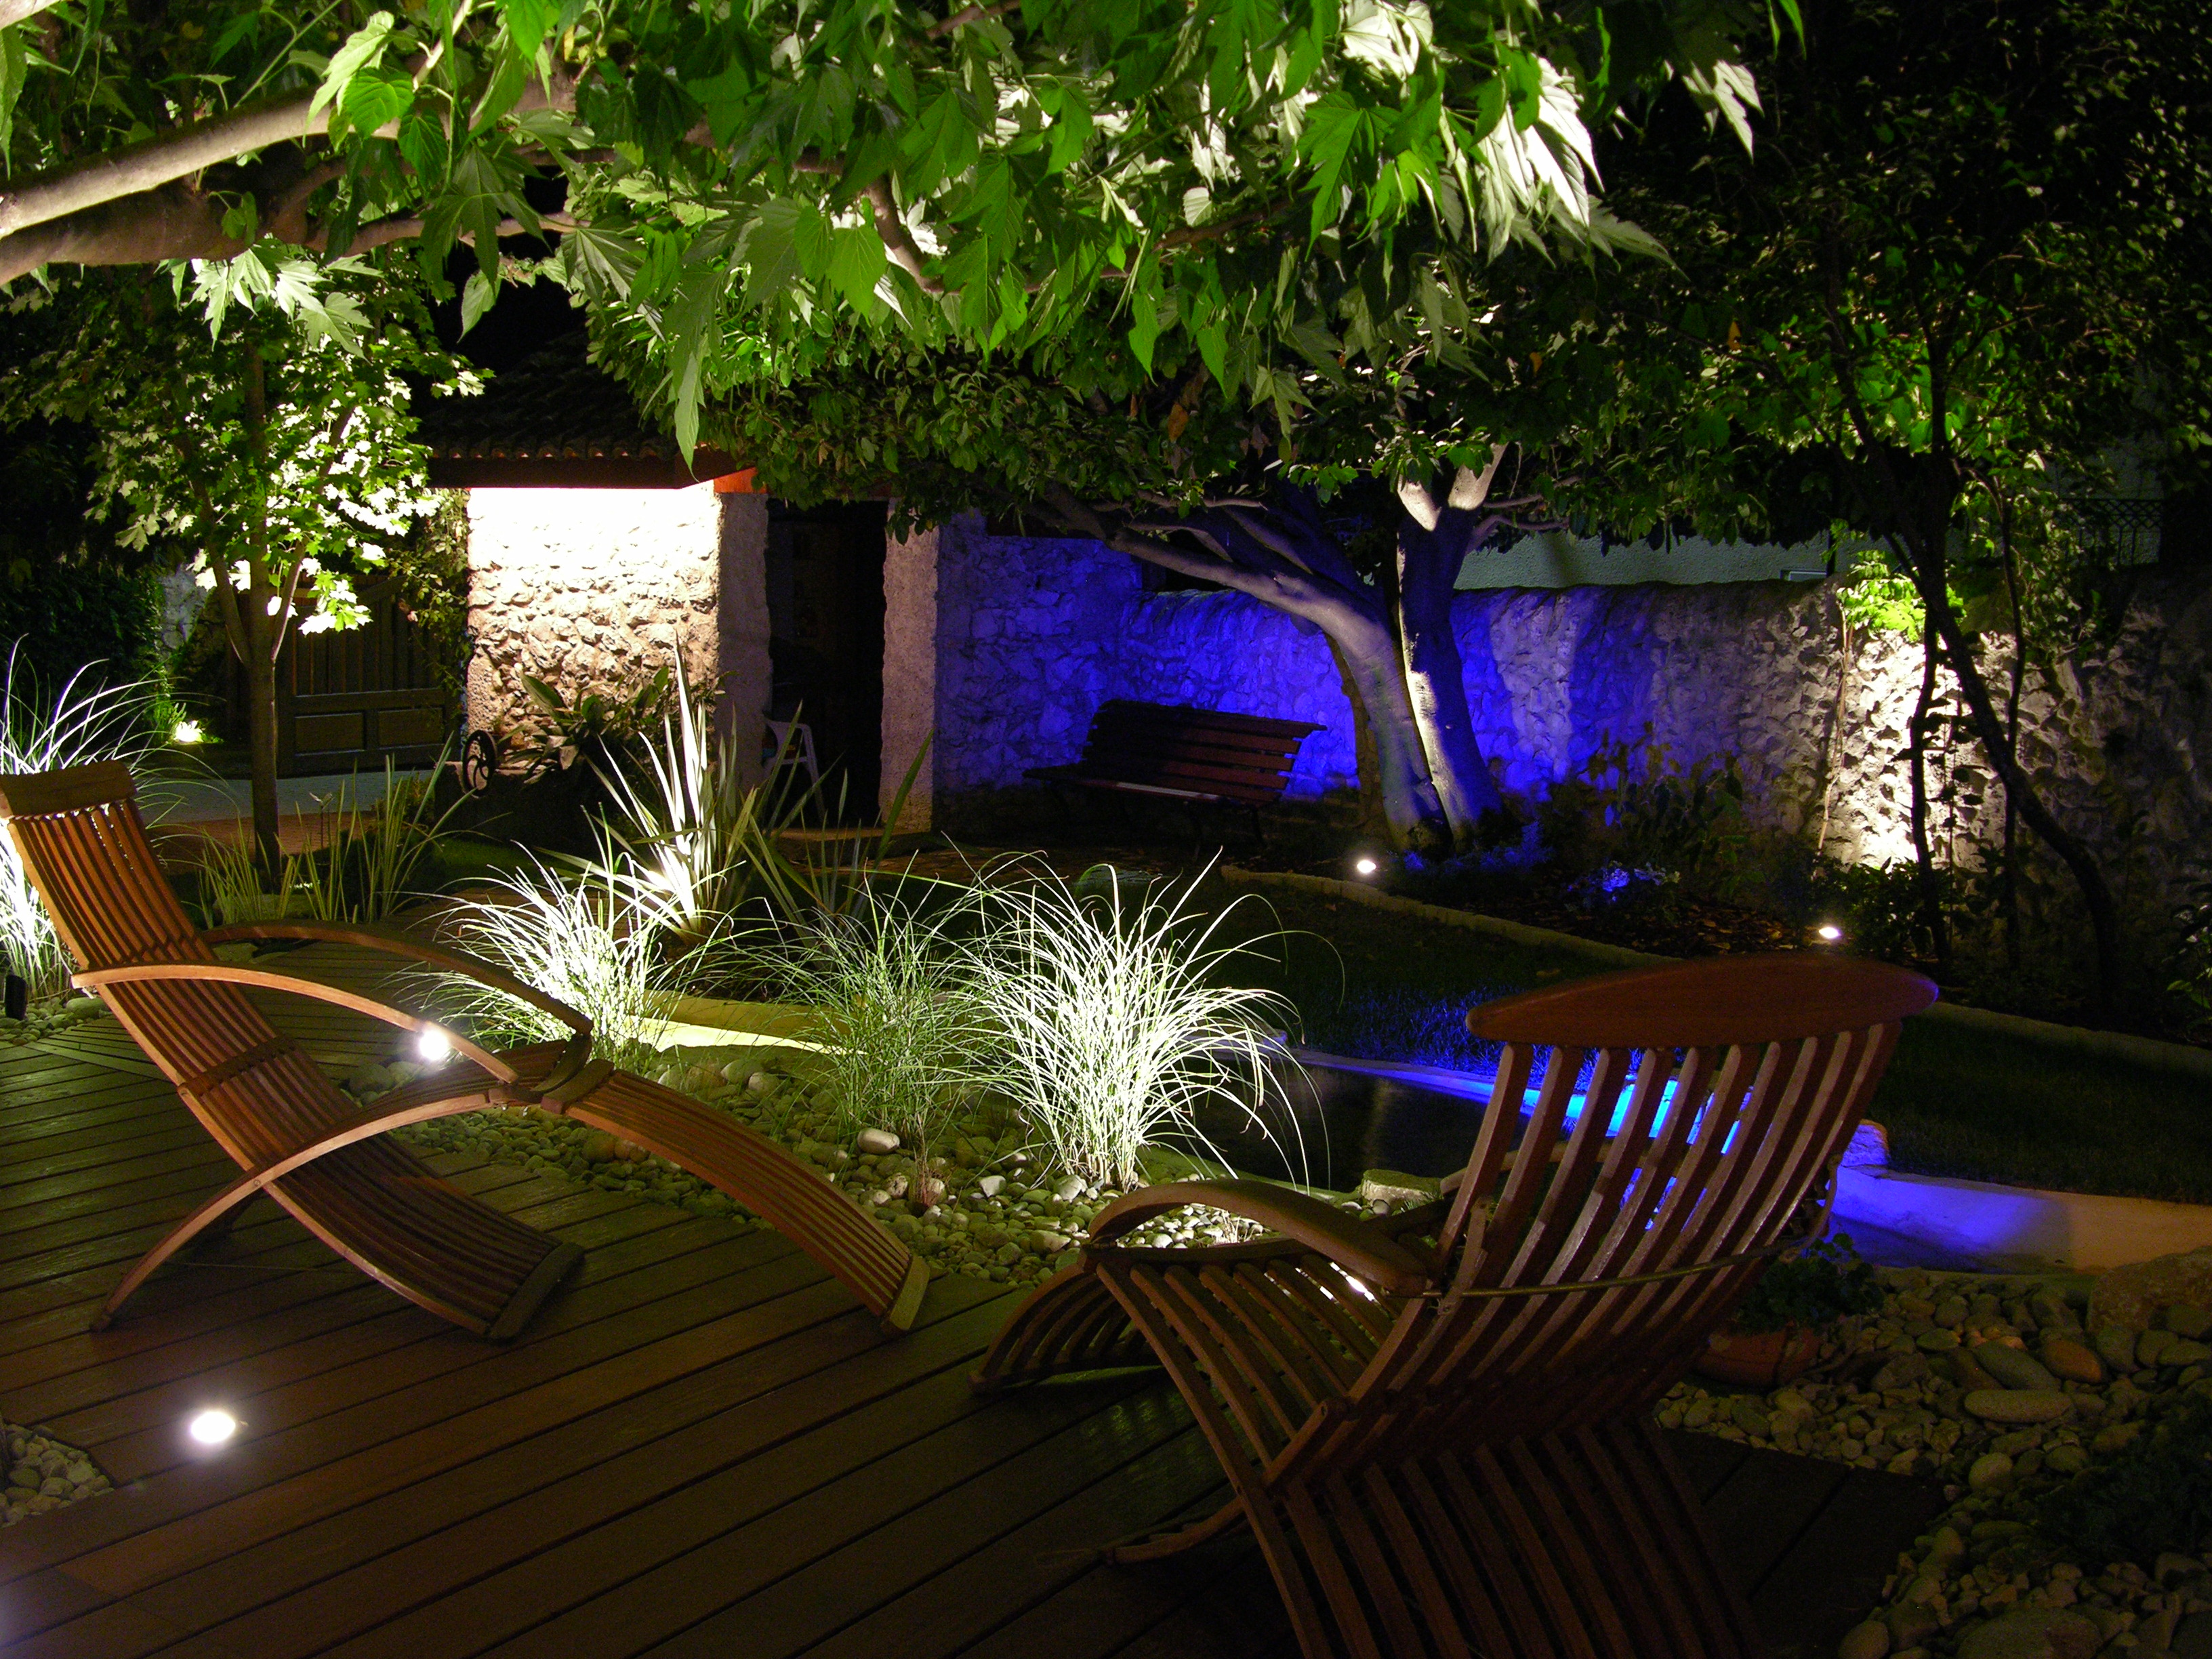 Comment mettre son jardin en lumi re for Lumiere exterieur